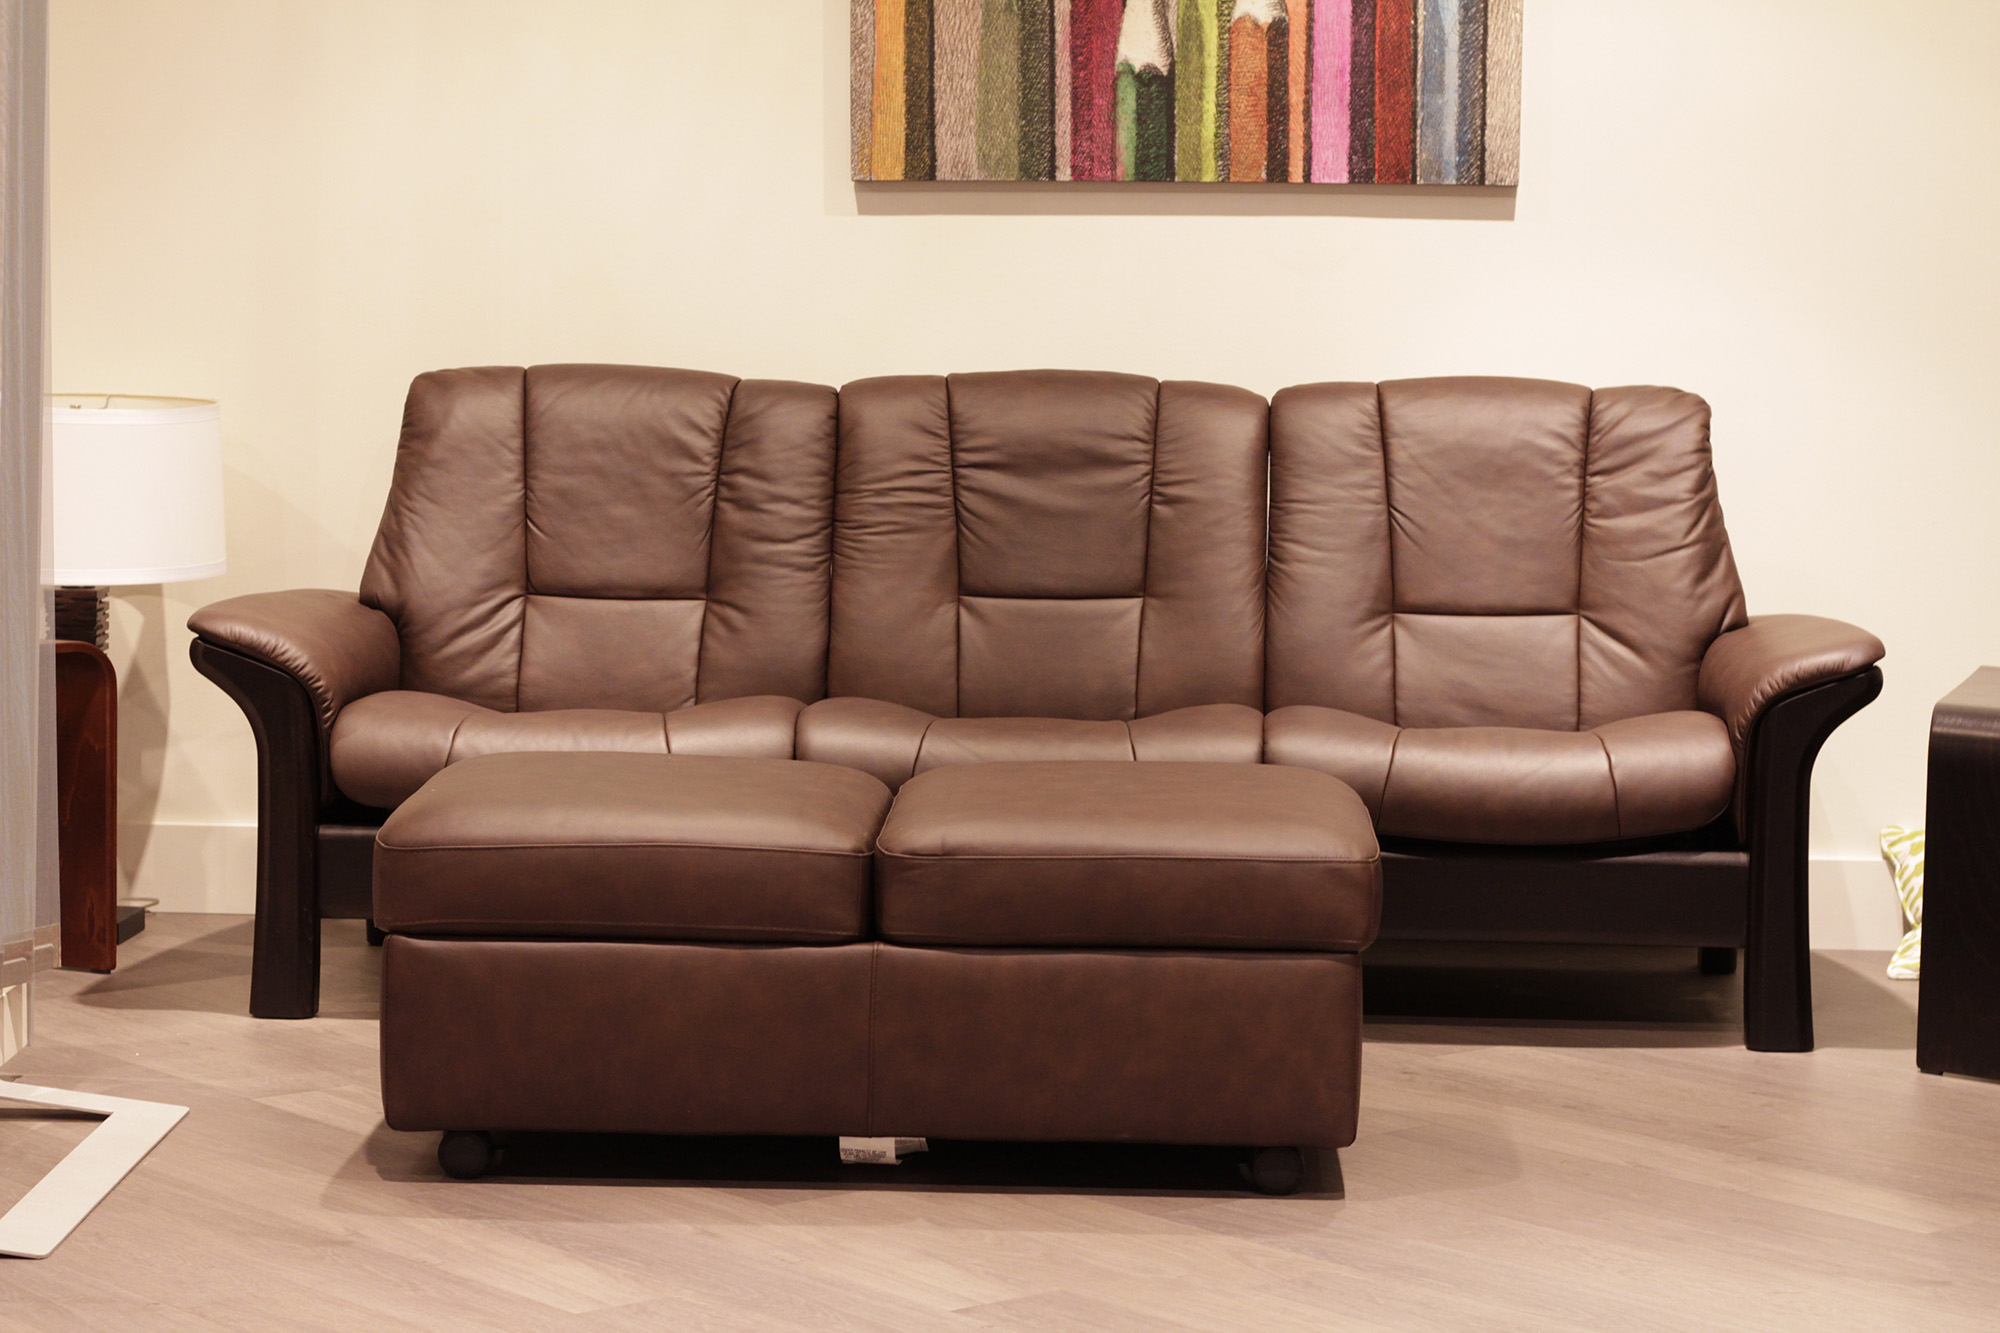 Stressless Buckingham 3 Seat Low Back Sofa Paloma Chocolate Leather